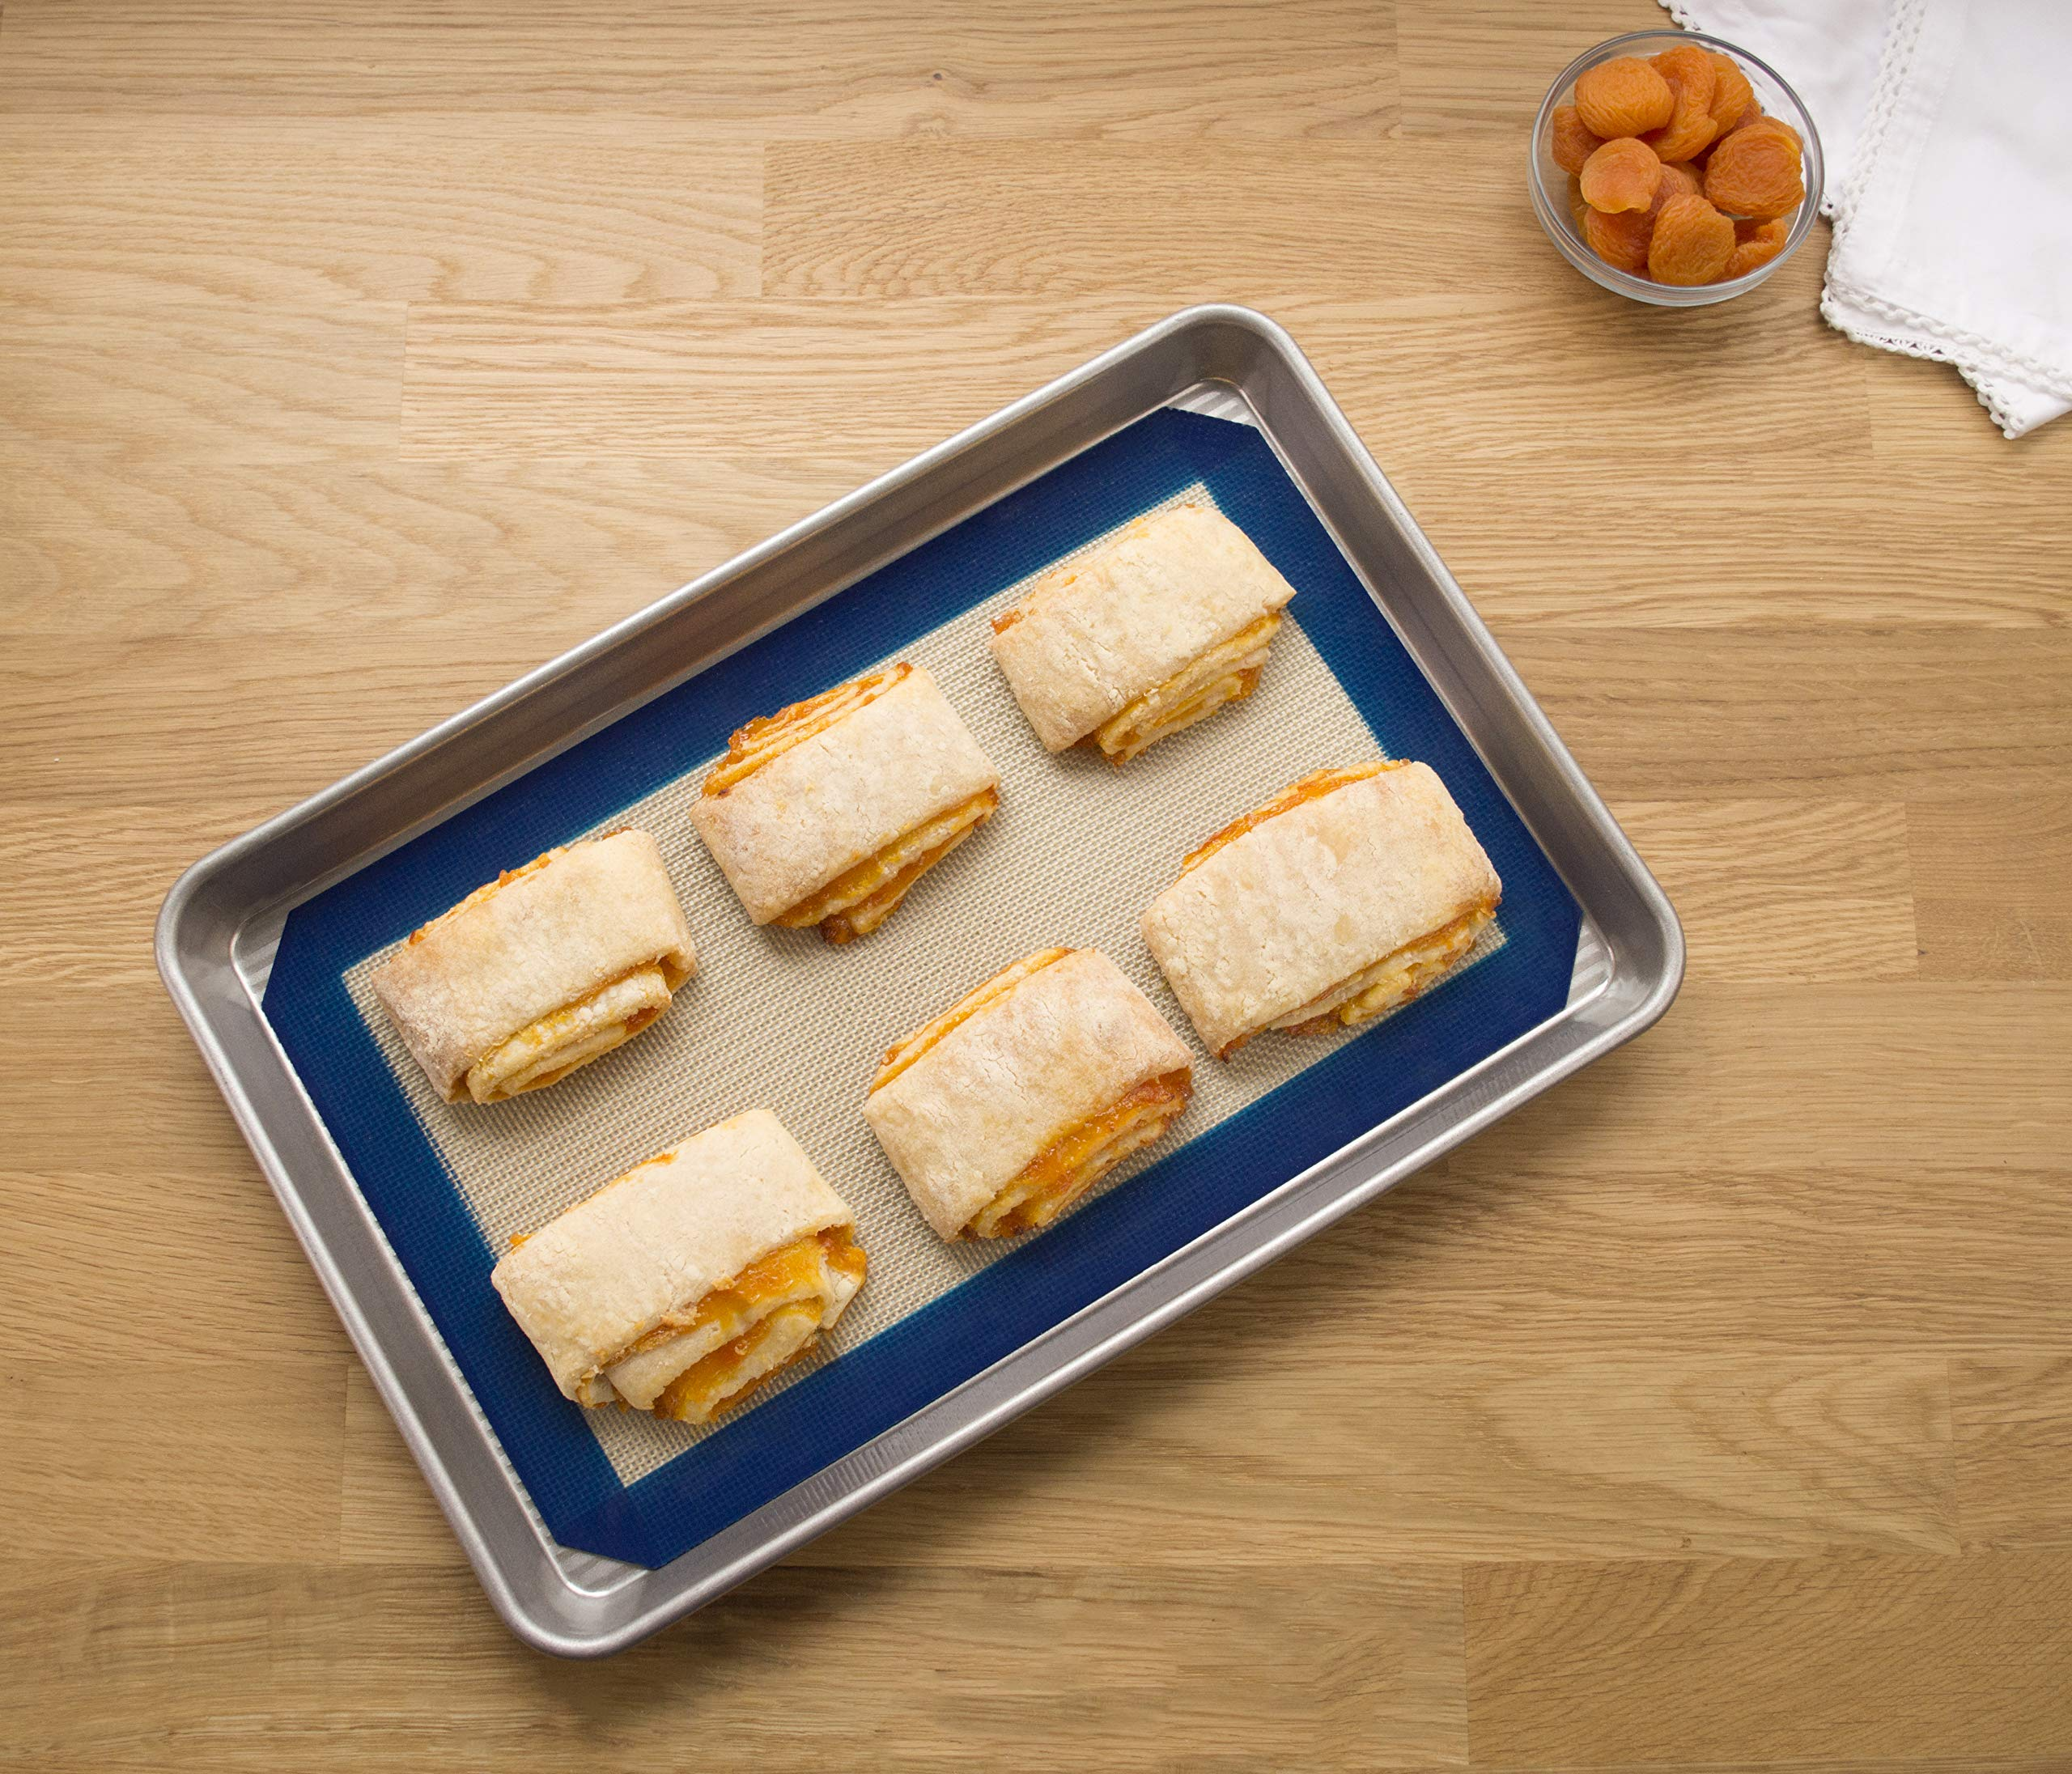 USA Pan 1705MT-1 Bakeware Nonstick Jelly Roll Pan and Silicone Mat Set by USA Pan (Image #2)